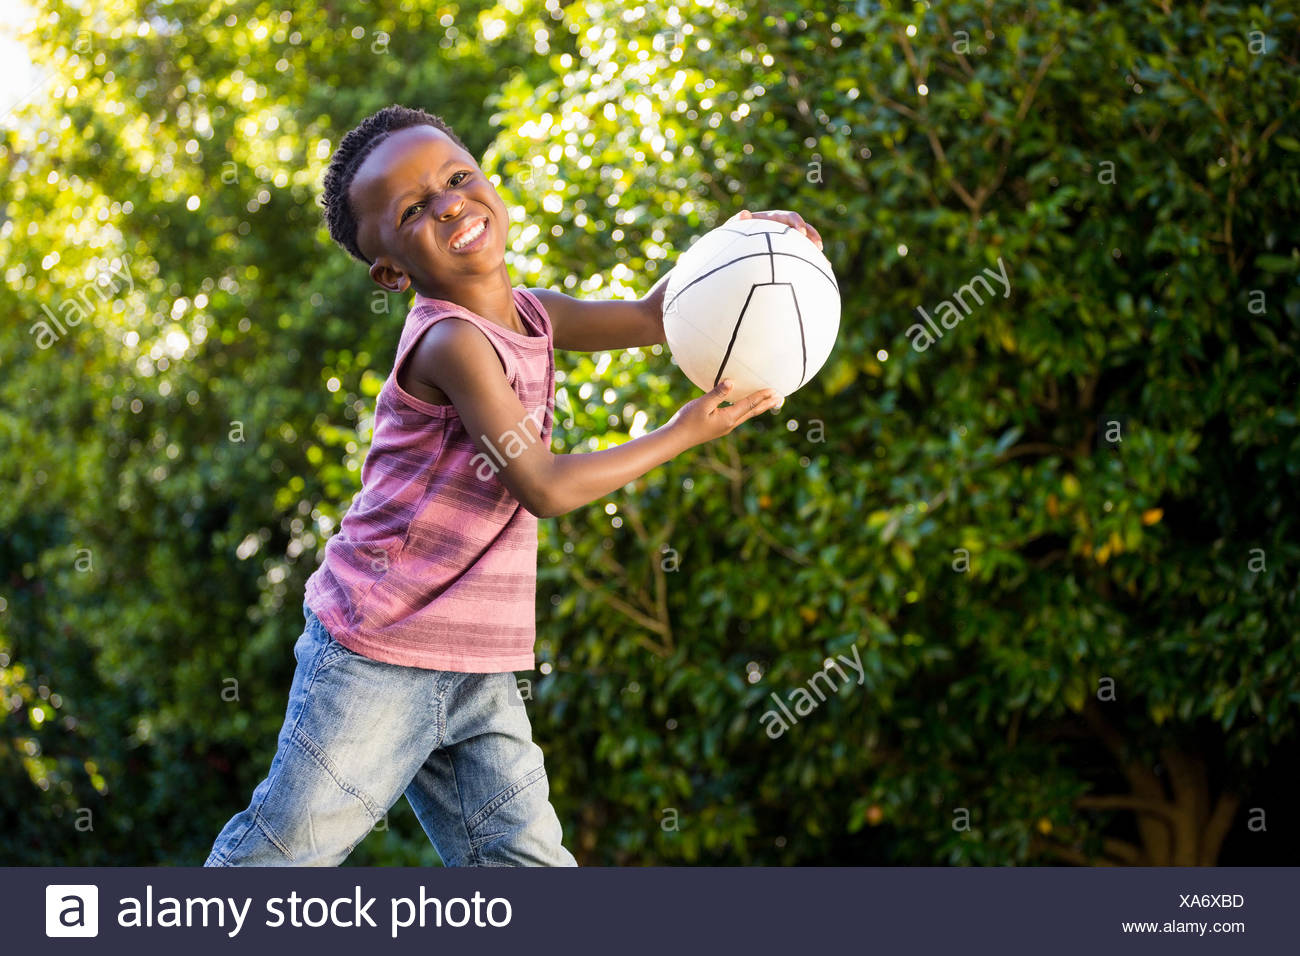 Boy is playing with baloon - Stock Image